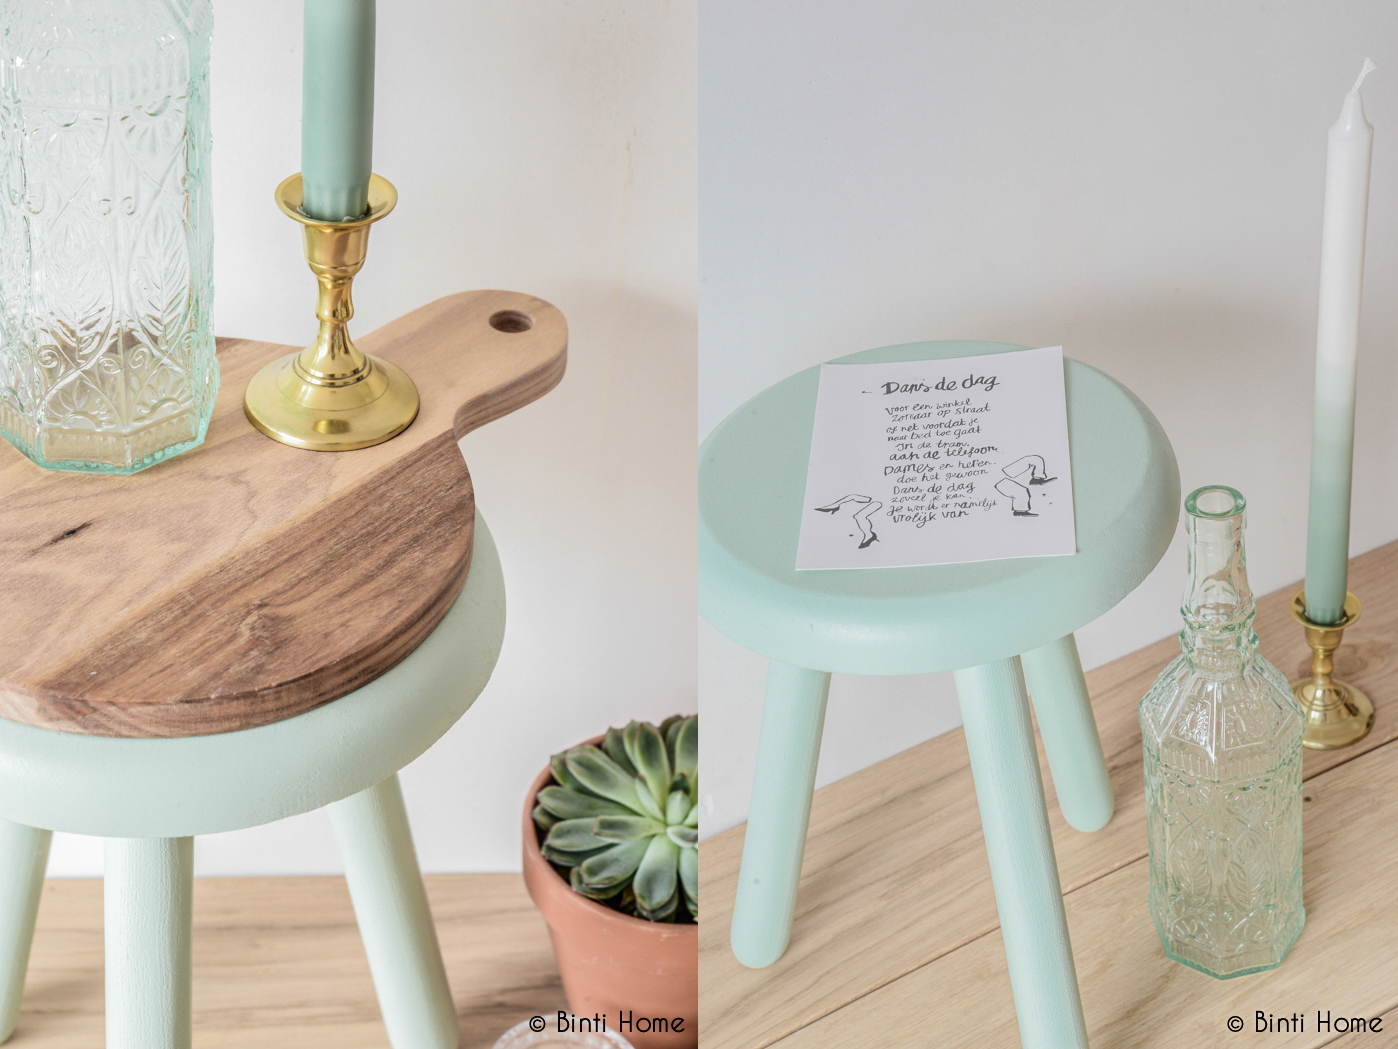 Stool make-over with Poetic Blue